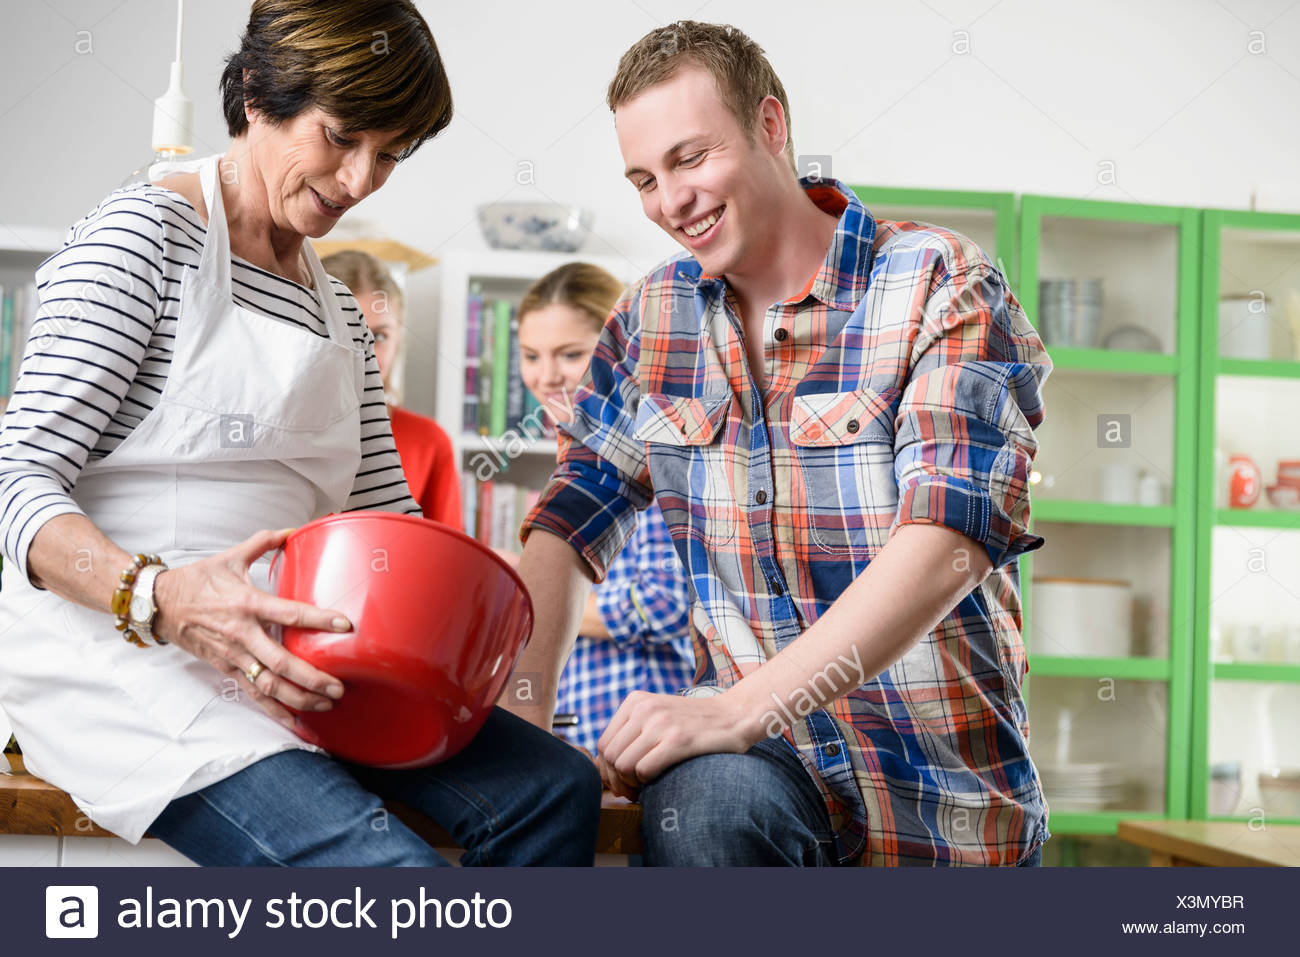 Mother and son looking into red bowl - Stock Image